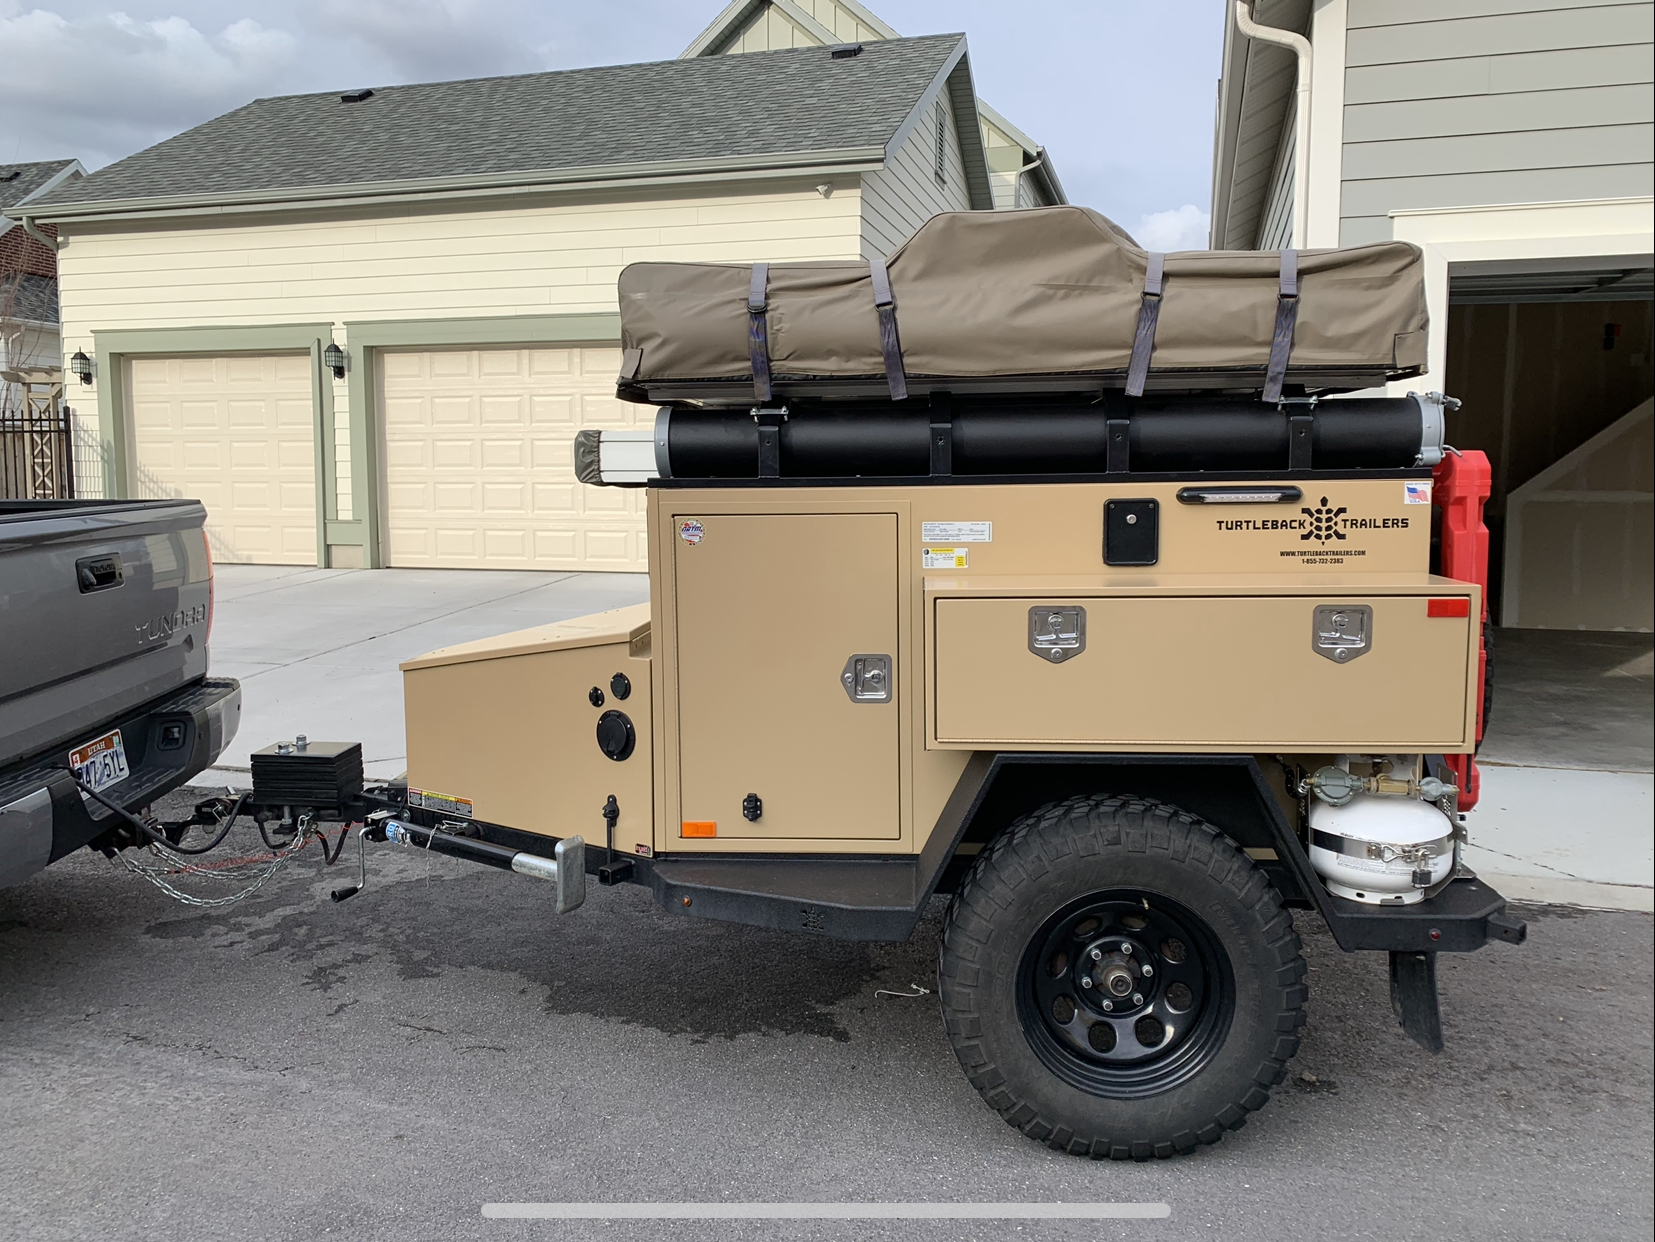 2016 Turtleback Expedition Trailer For Sale | Expedition Portal